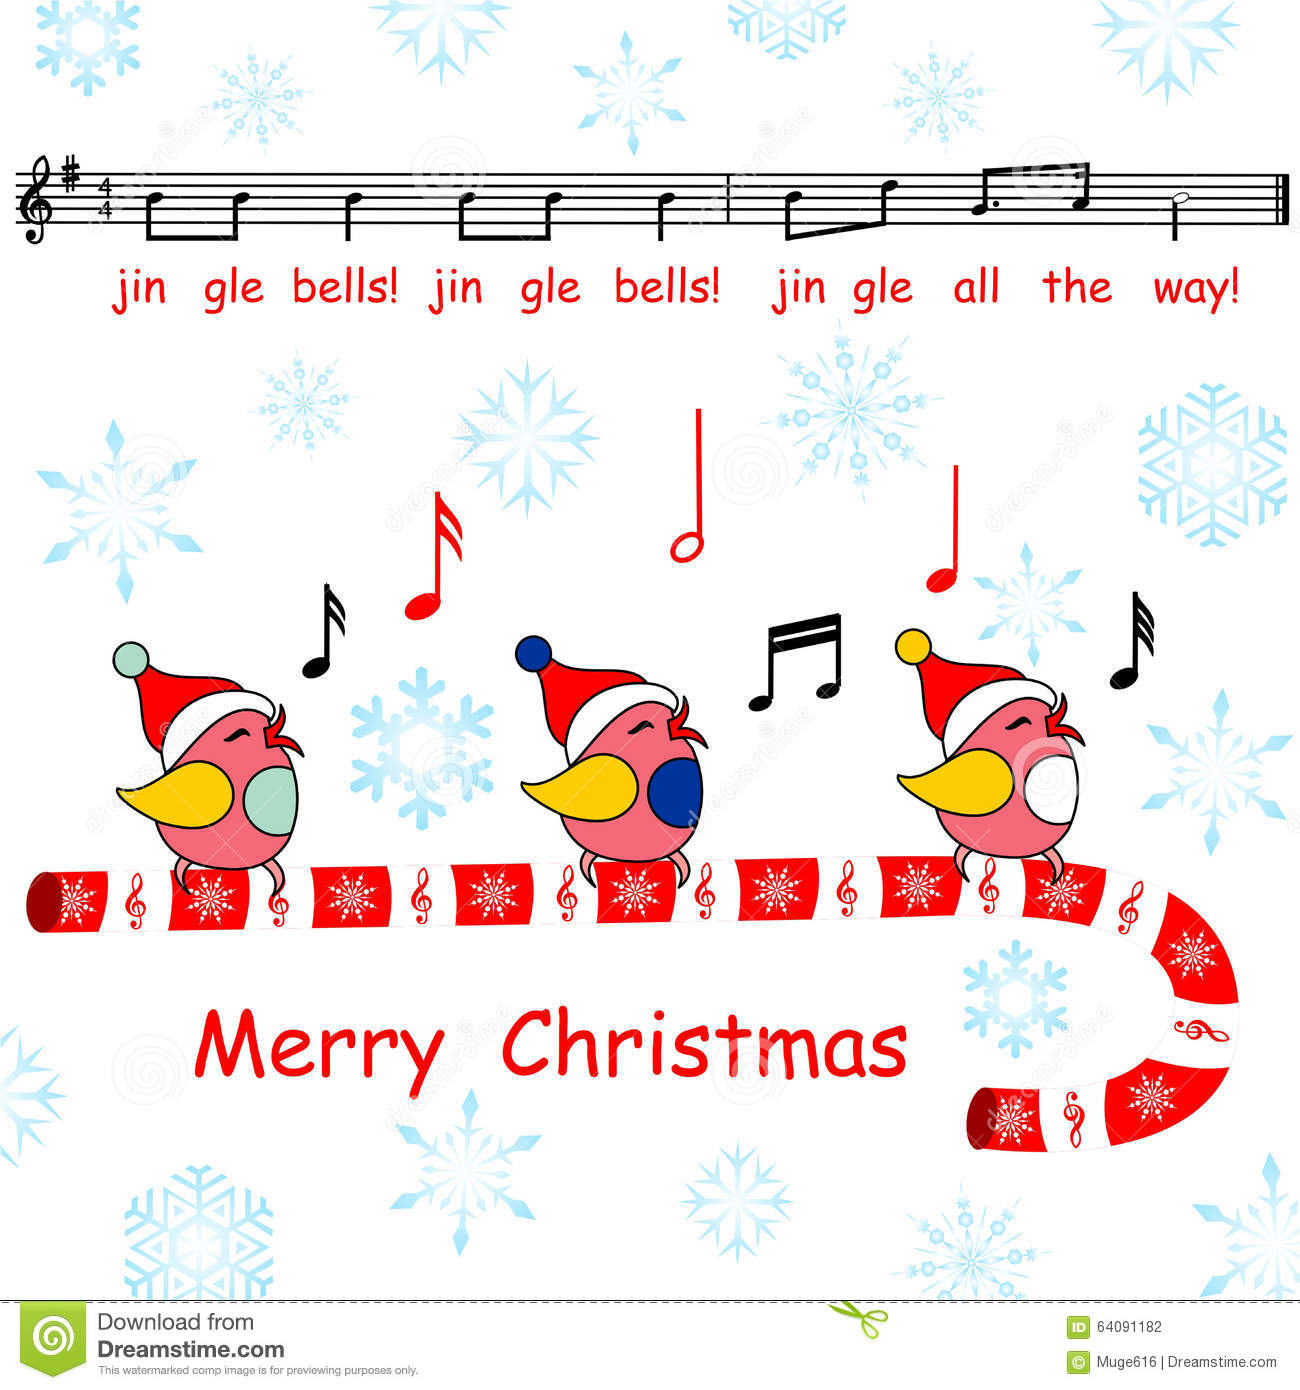 Merry Christmas Card,said The Jingle Bells Song Birds Stock Photo ...